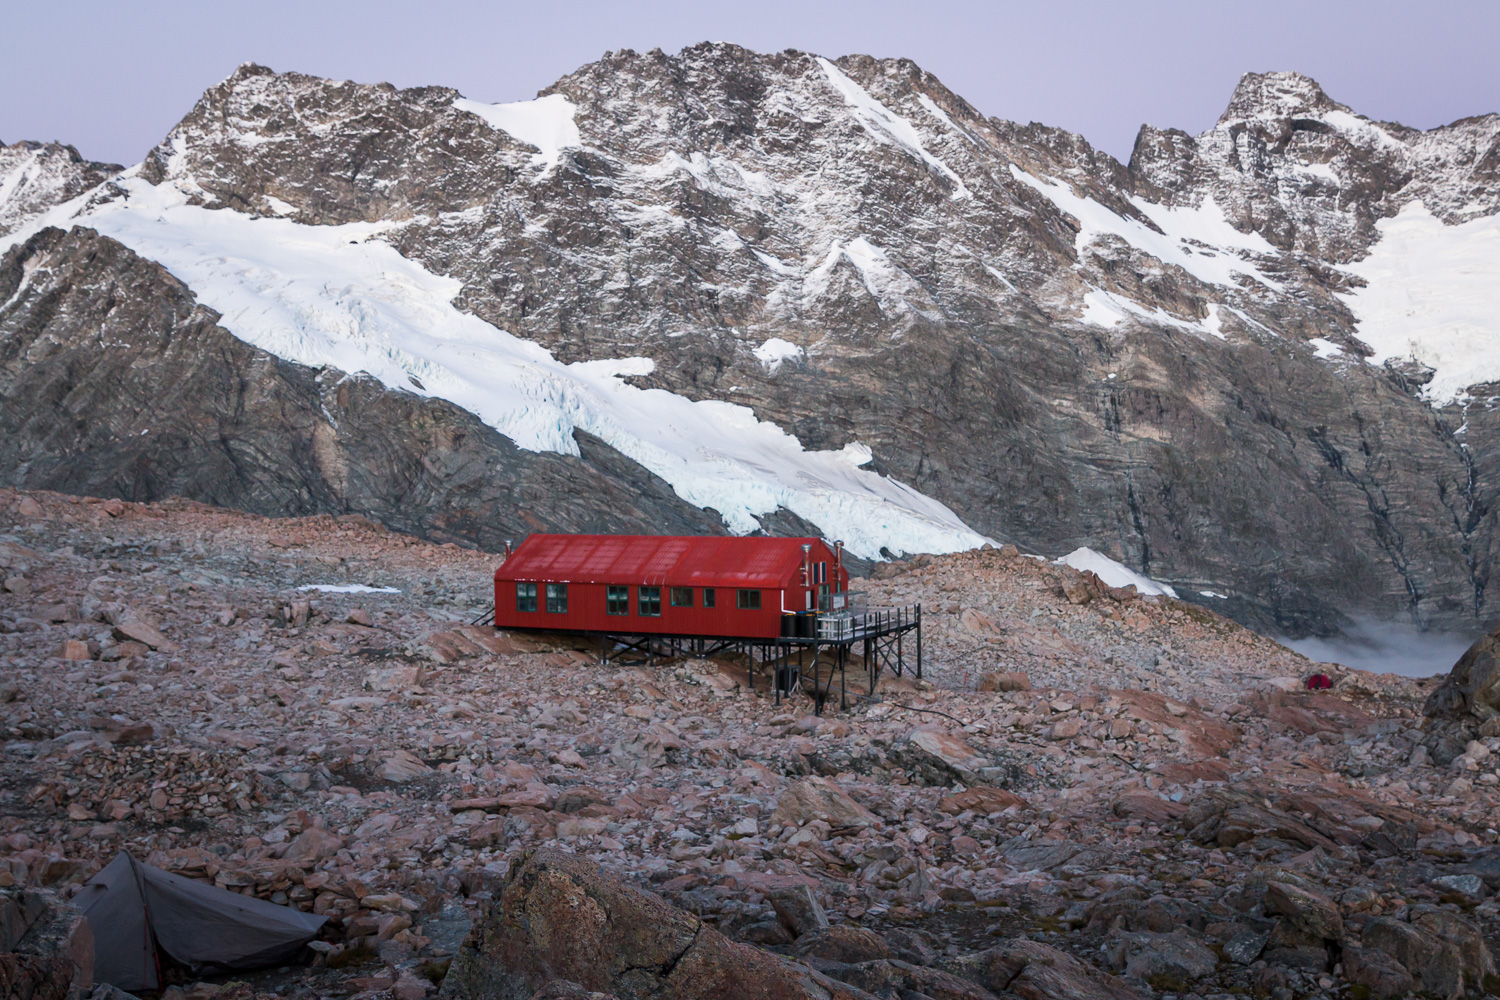 180206_new-zealand-road-trip-lcarvitto_47.jpg